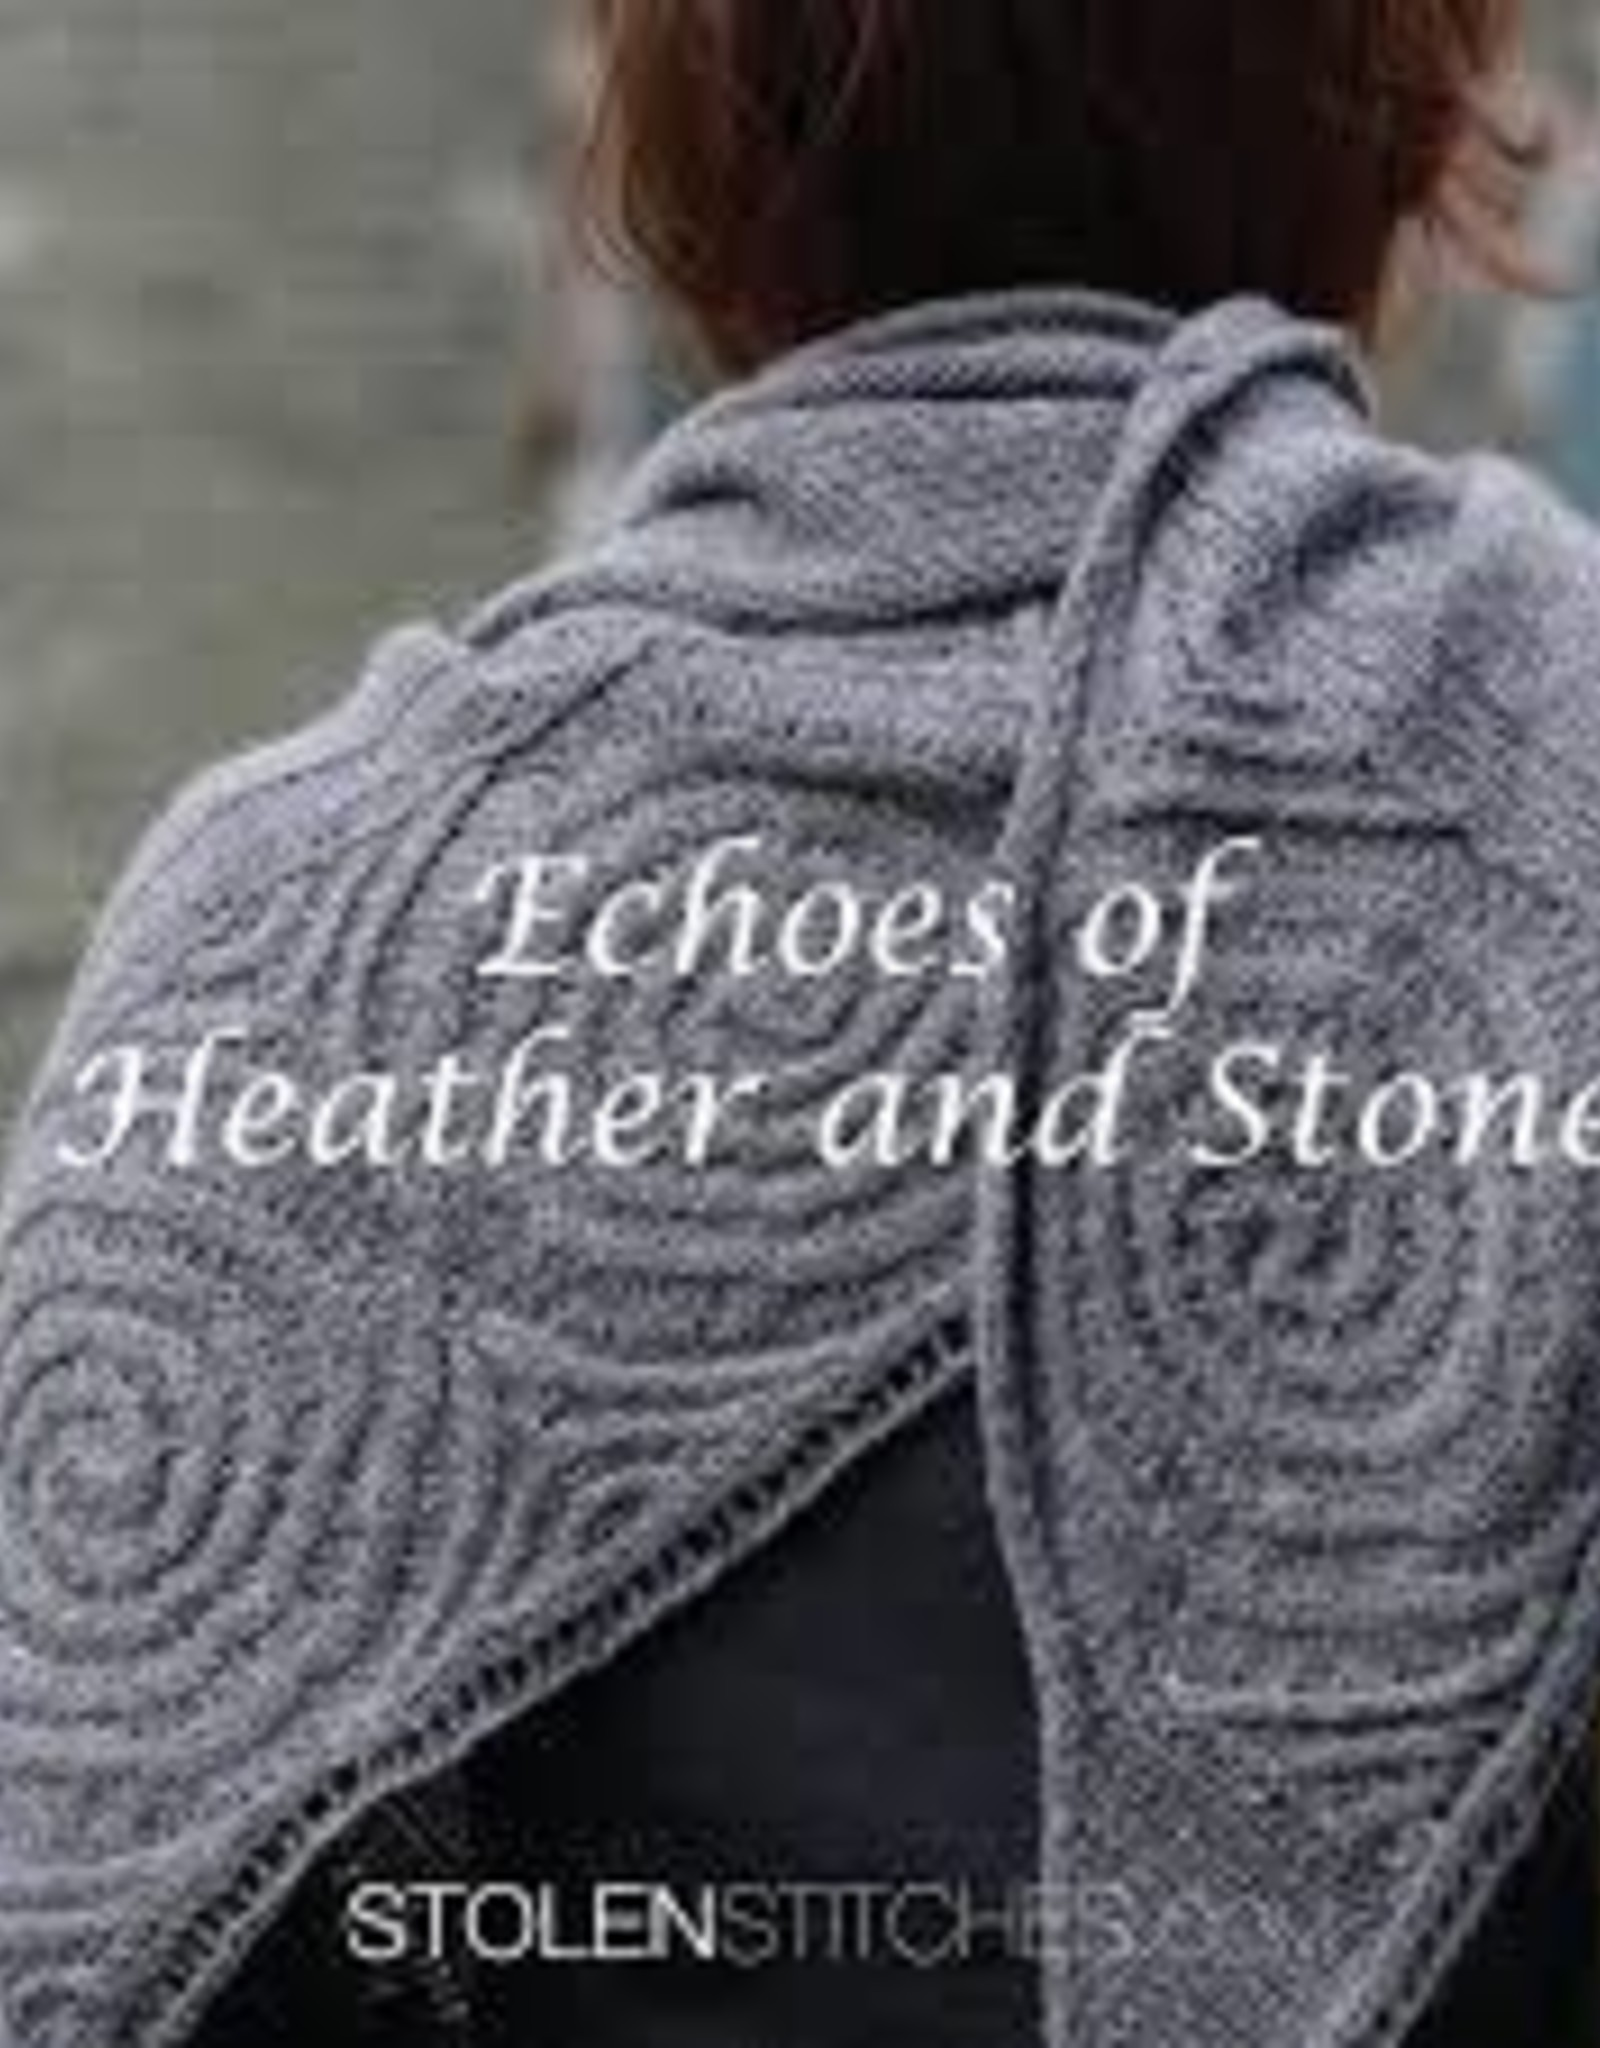 Book- Echoes of Heather and Stone by Feller